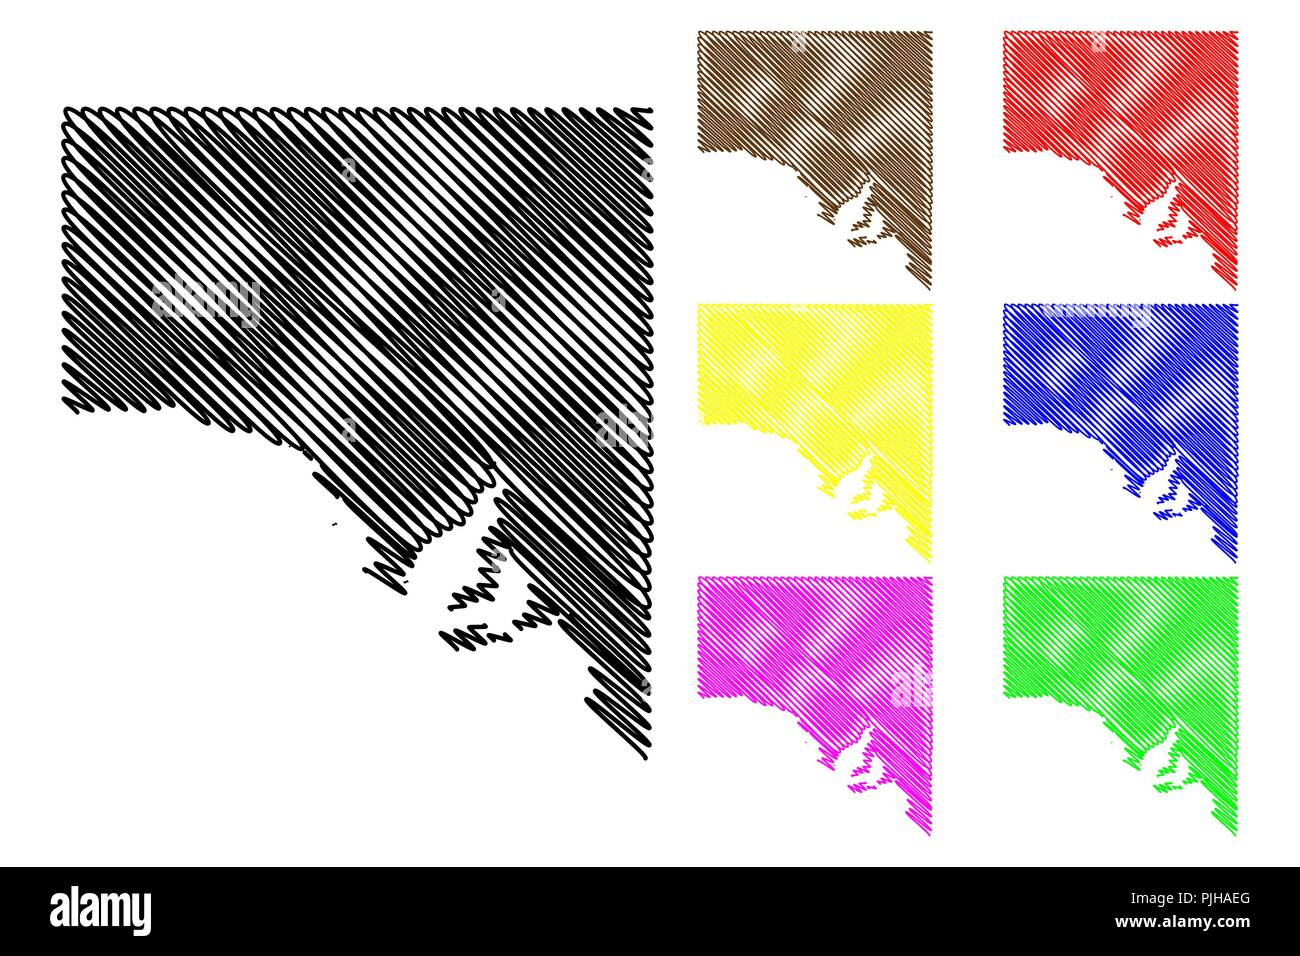 South Australia (Australian states and territories, SA) map vector illustration, scribble sketch South Australia map - Stock Image